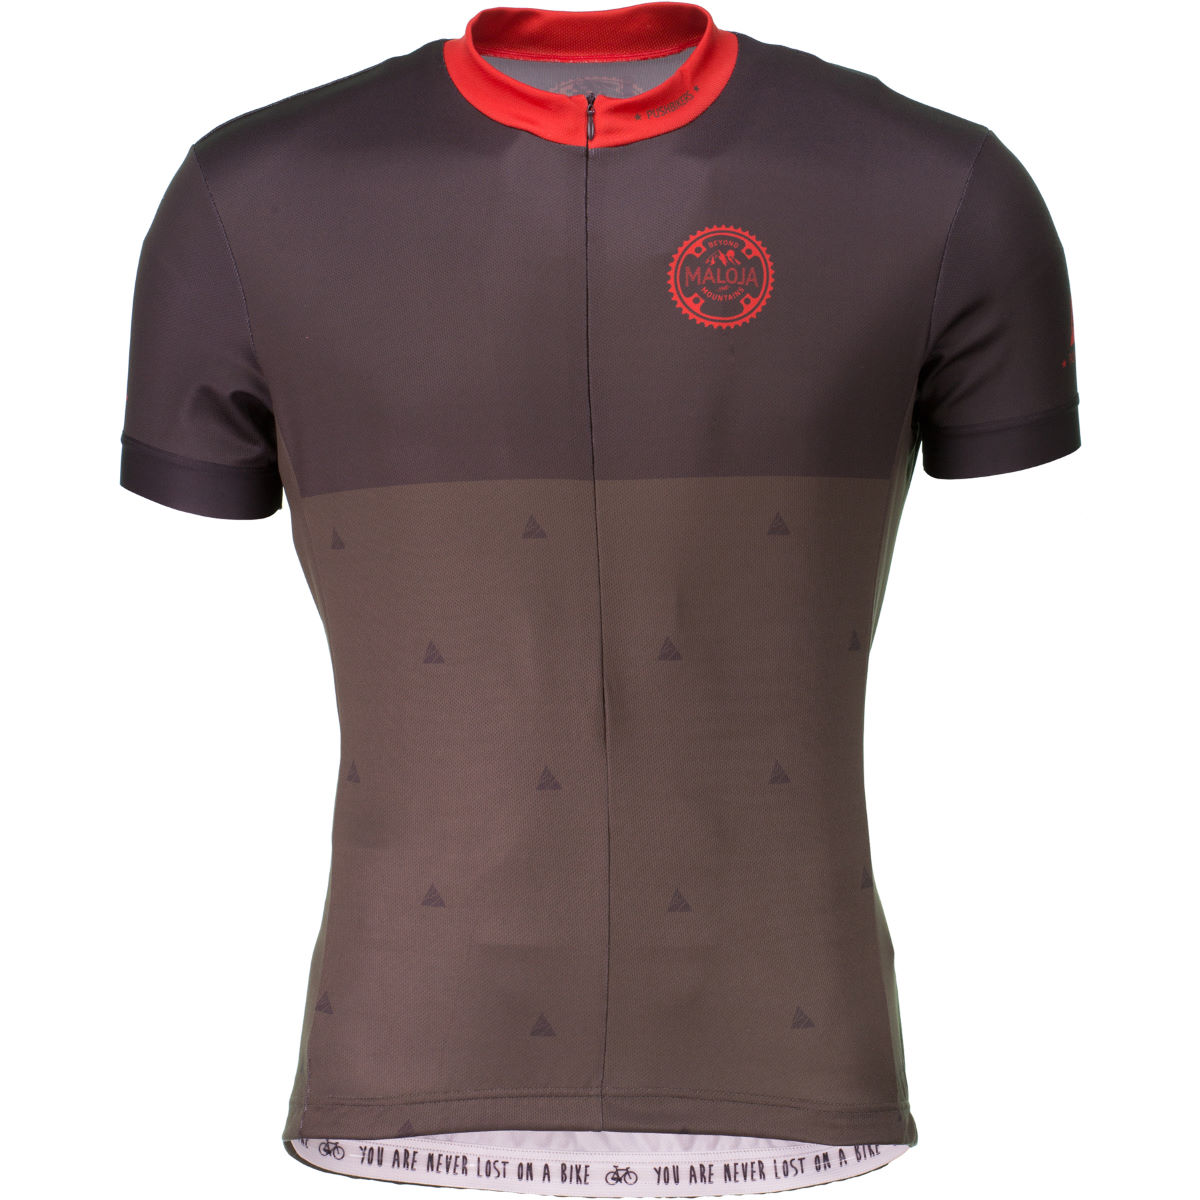 Maillot Maloja PushbikersM.1/2 (manches courtes) - S Charbon